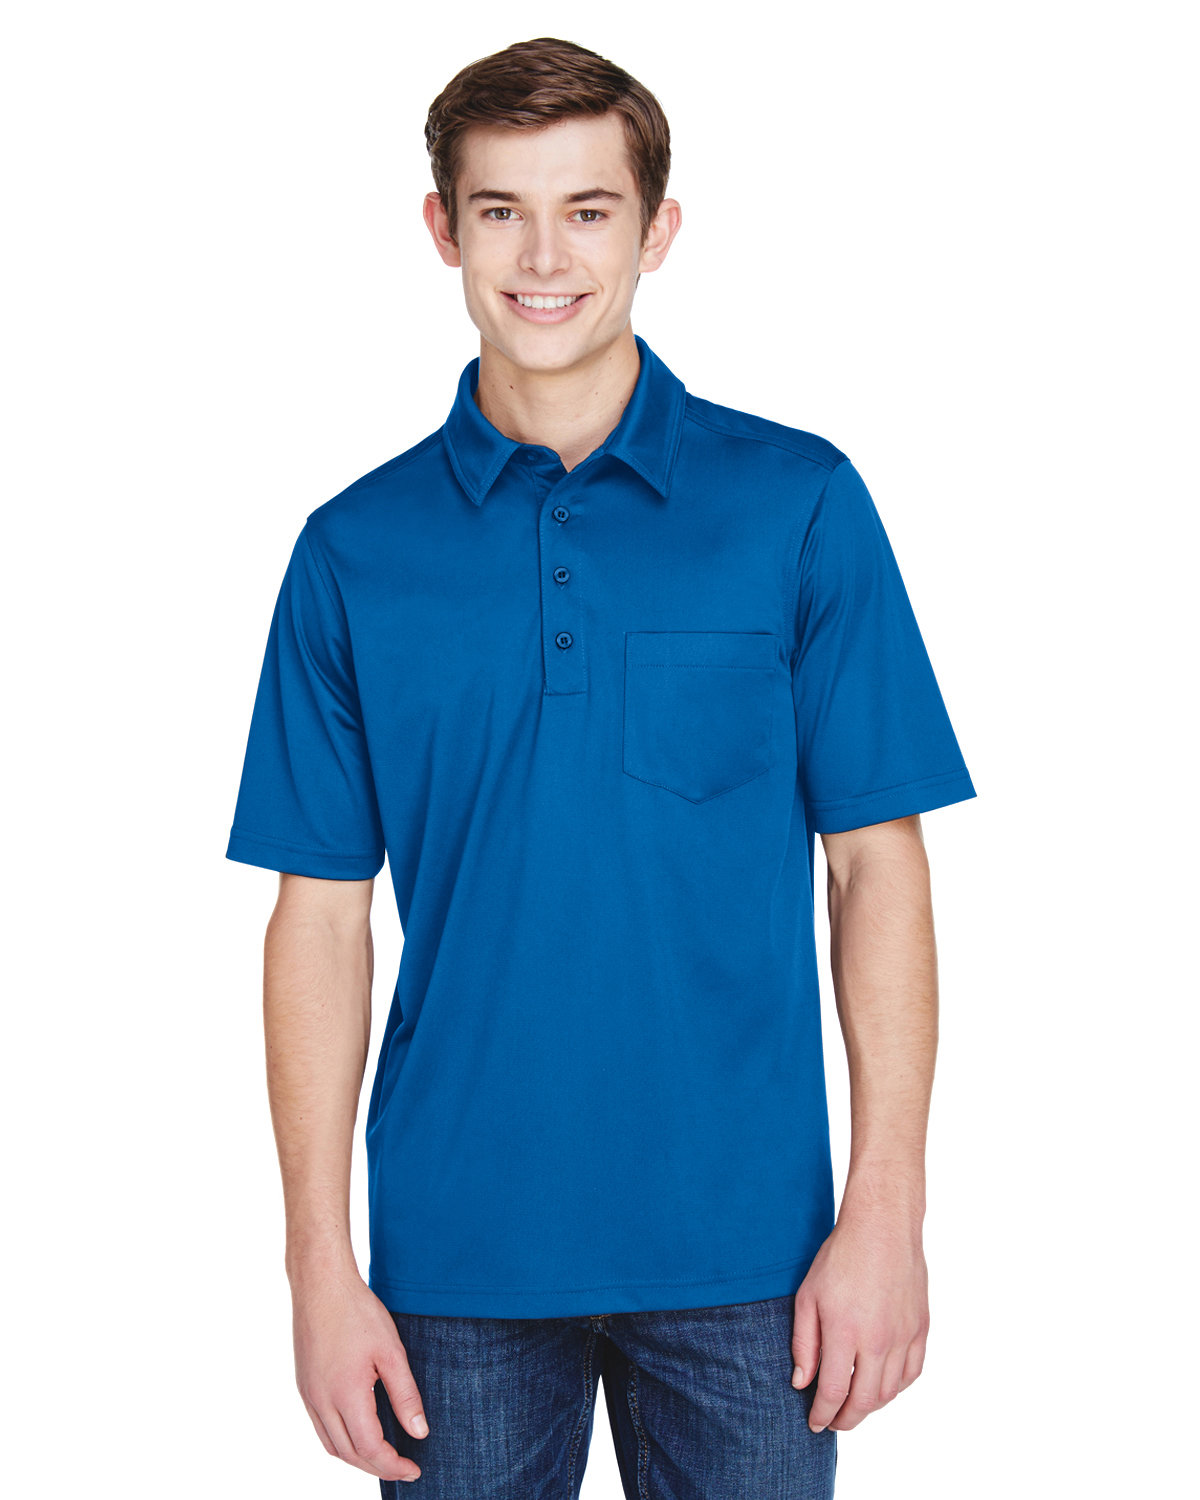 Extreme Men's Tall Eperformance™ Shift Snag Protection Plus Polo TRUE ROYAL